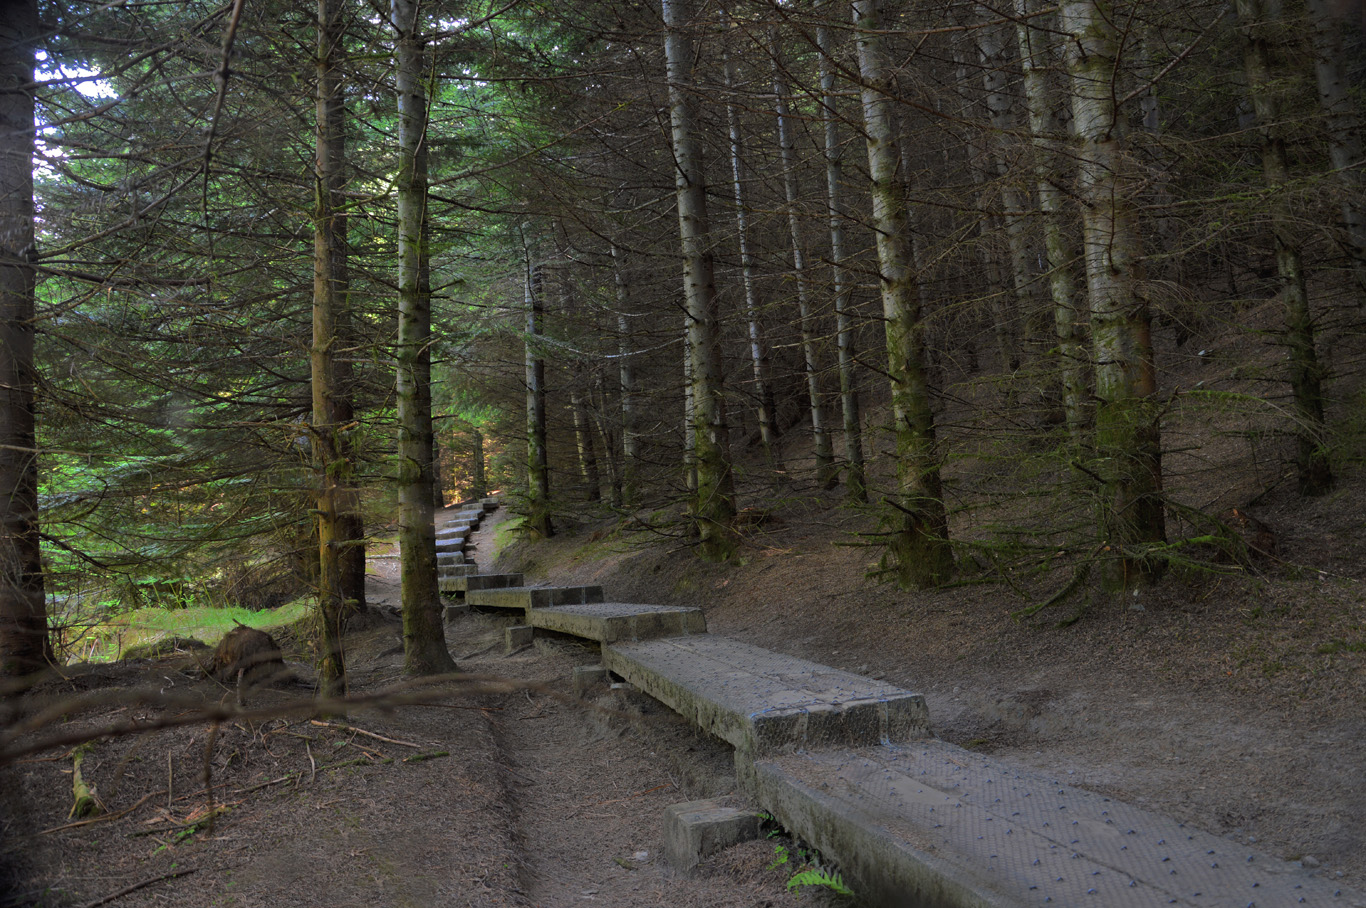 The start of the wooden trail